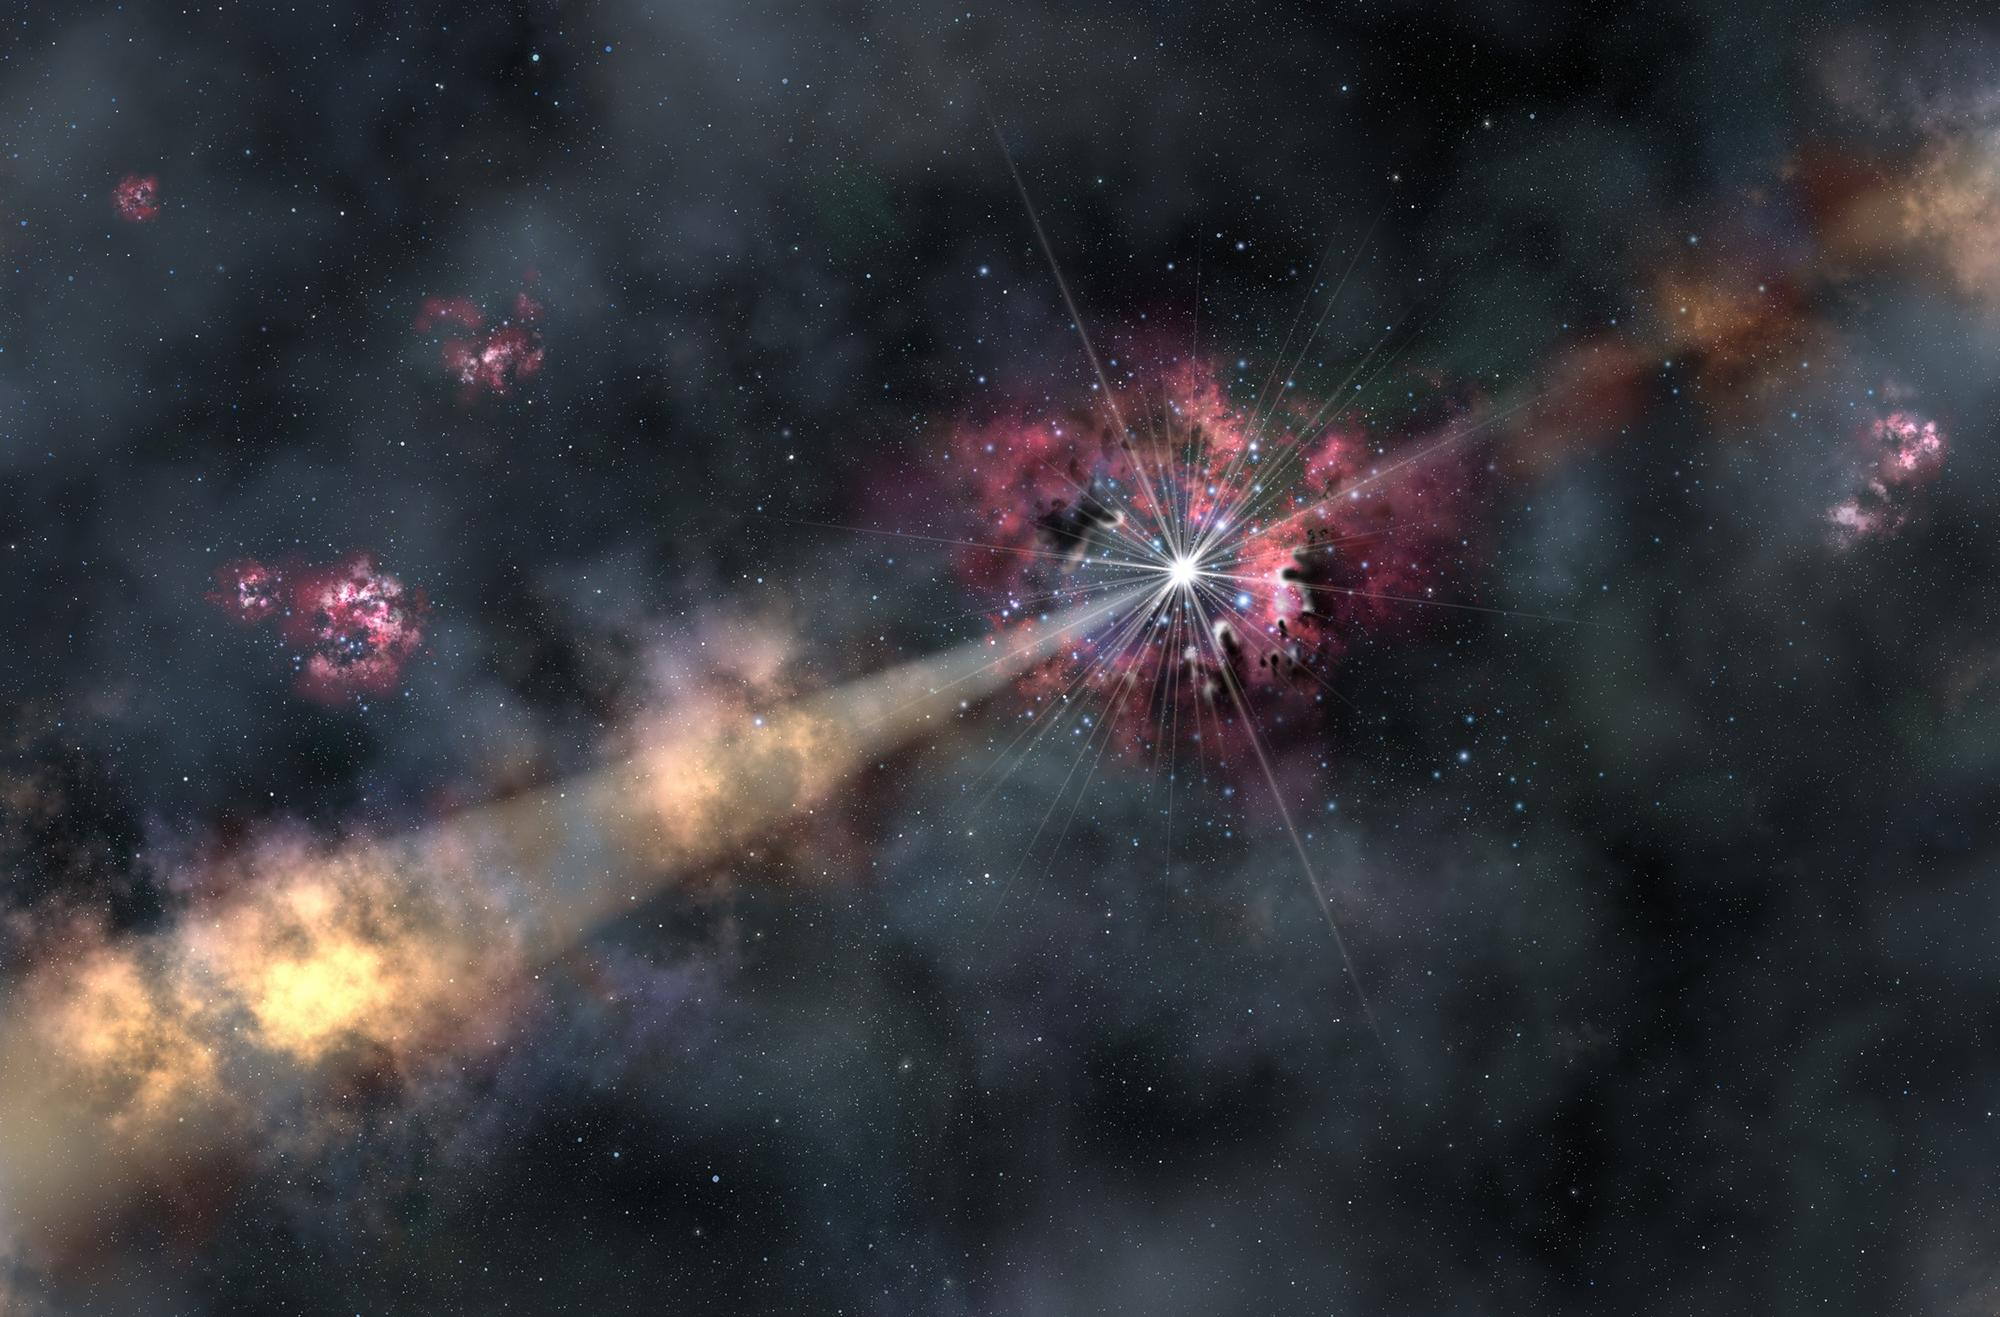 Image from gamma-ray blast